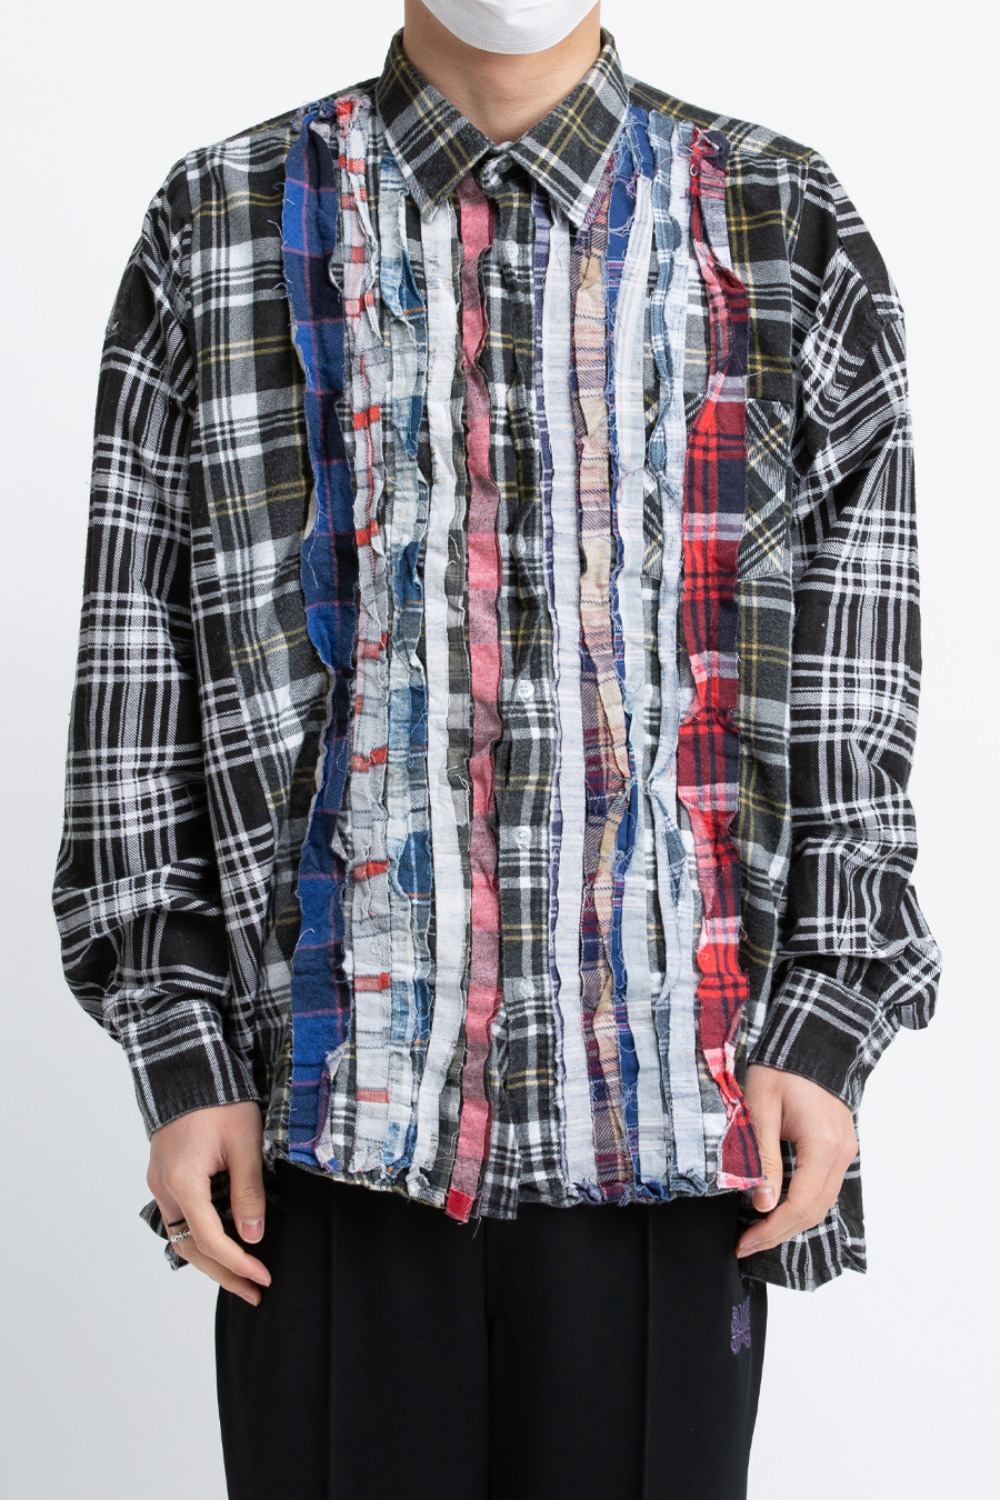 (FRE-7)REBUILD BY NEEDLES FLANNEL SHIRT - RIBBON WIDE SHIRT ASSORTED